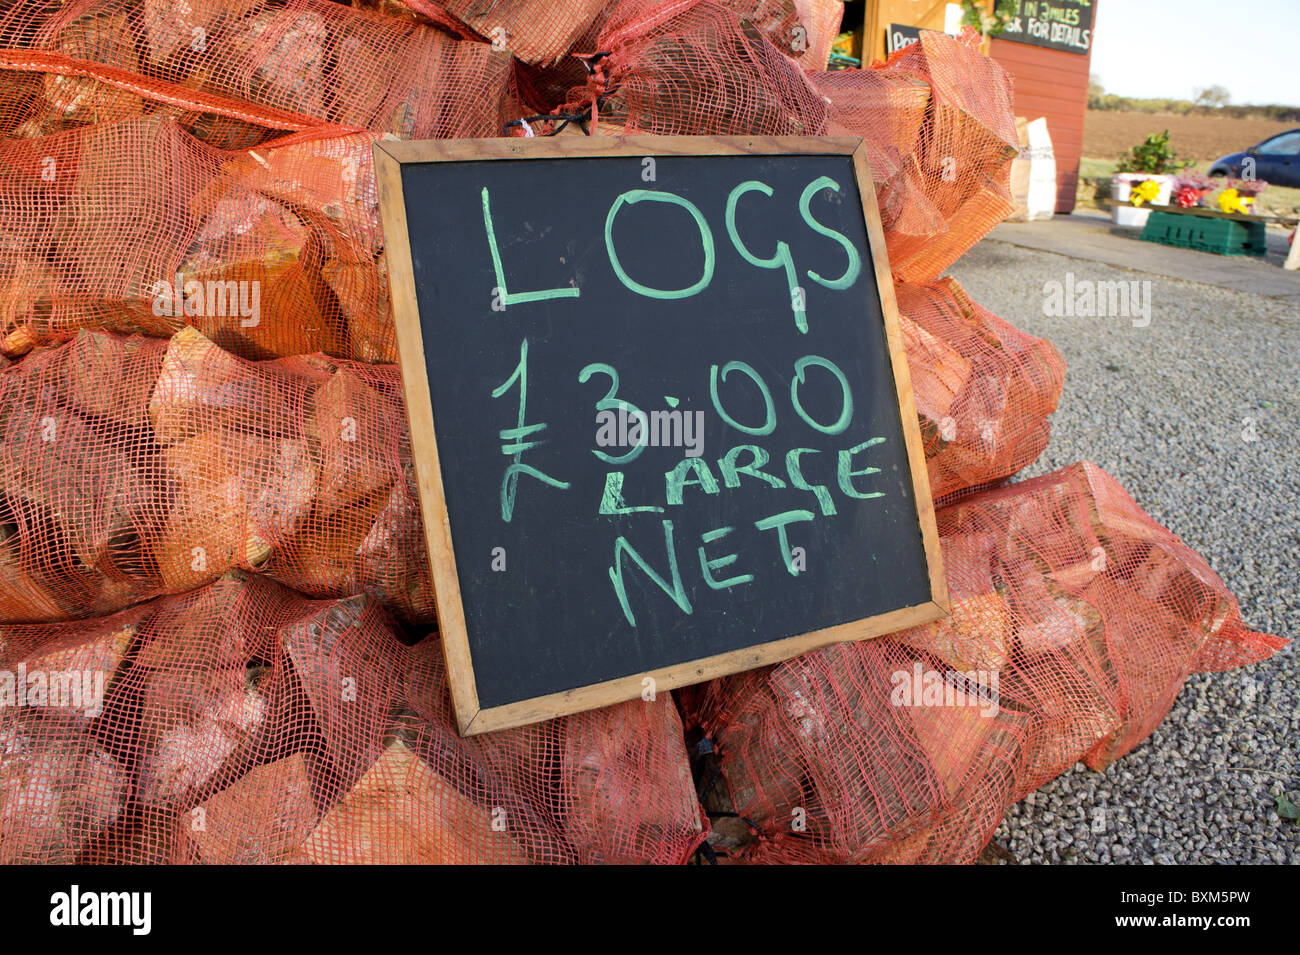 bags of logs for sale at a roadside farm shop, cornwall, uk - Stock Image